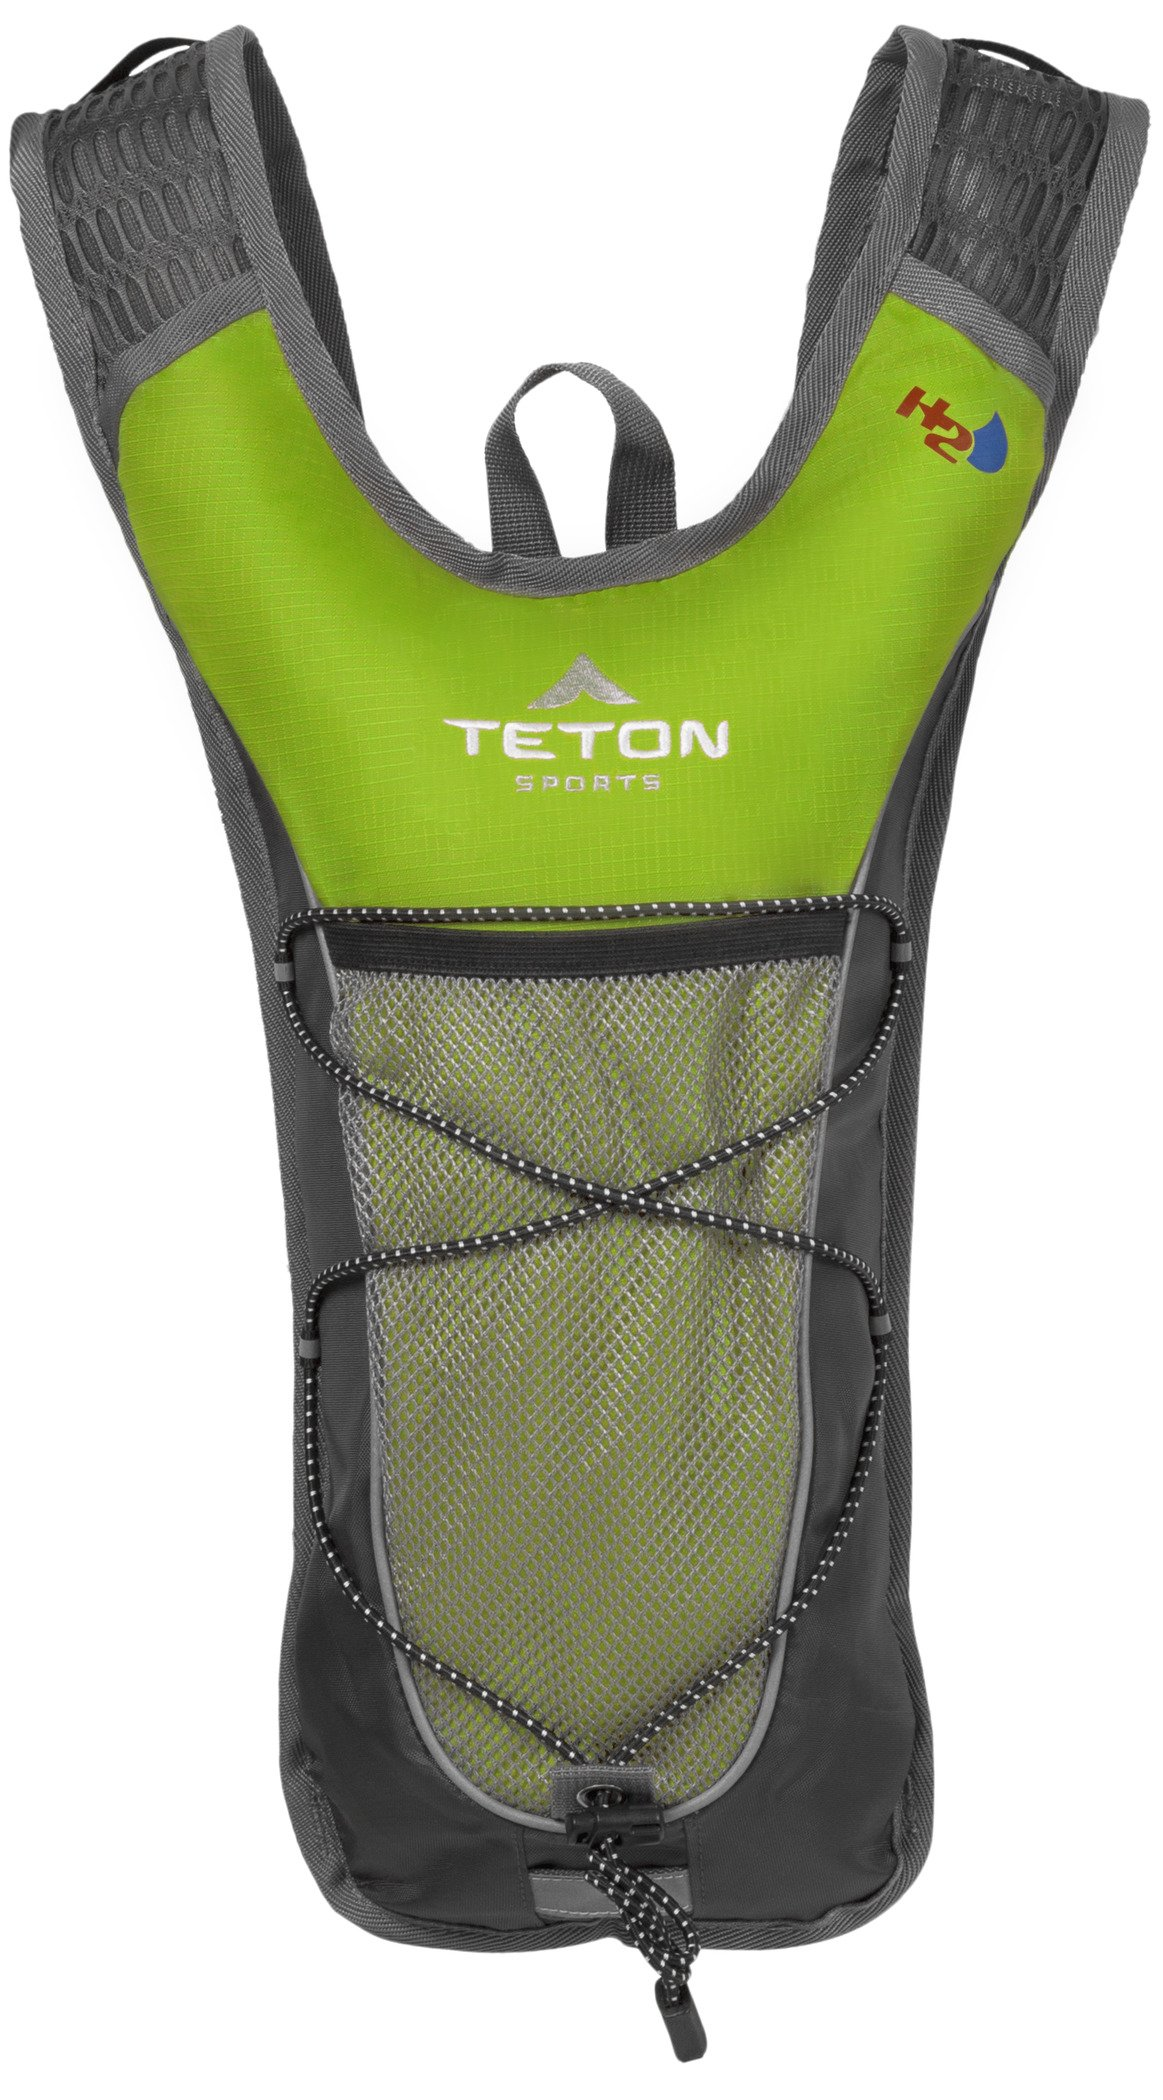 TETON Sports TrailRunner 2.0 Hydration Pack; Backpack for Hiking, Running and Cycling; Free 2-Liter Hydration Bladder; Bright Green by TETON Sports